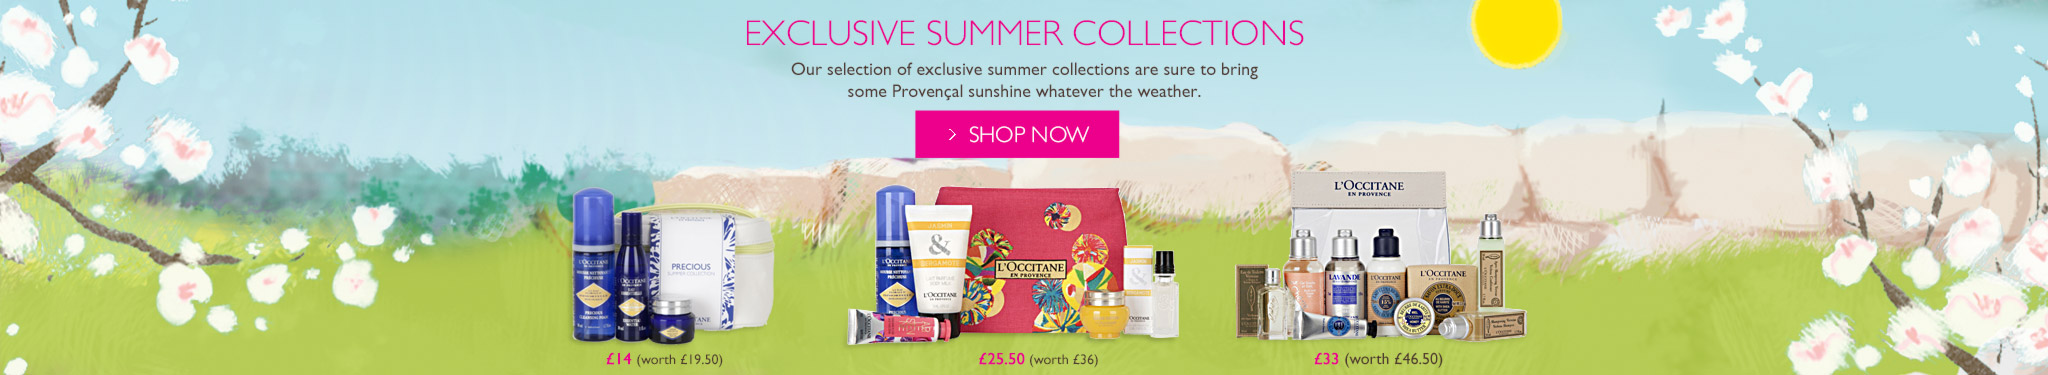 Summer Exclusive Collections